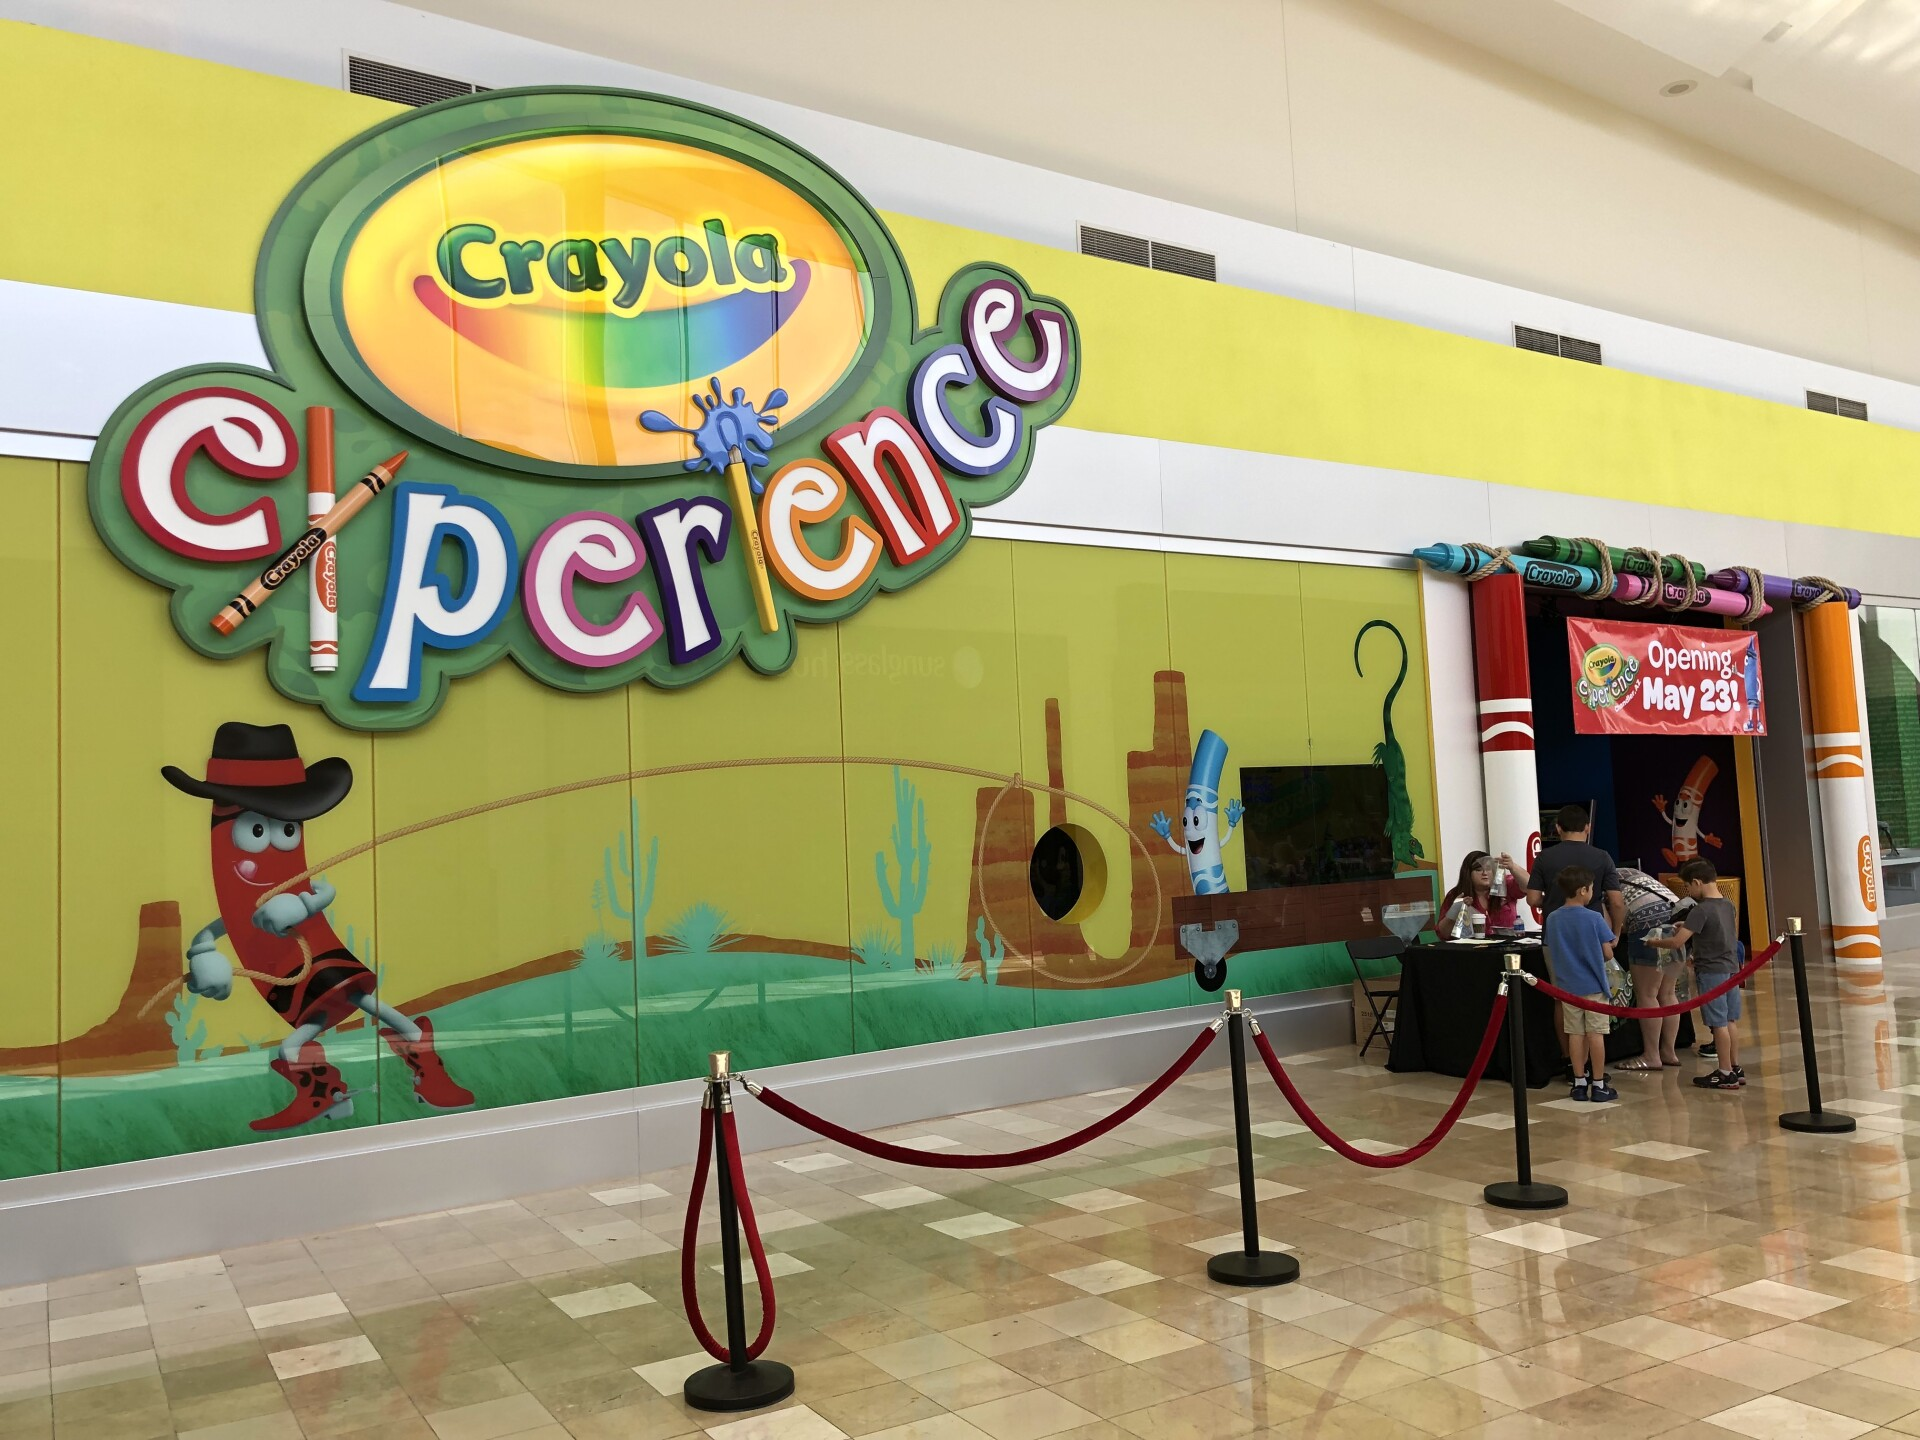 Sneak Peek A Look Inside The Crayola Experience At Chandler Fashion Center Mall